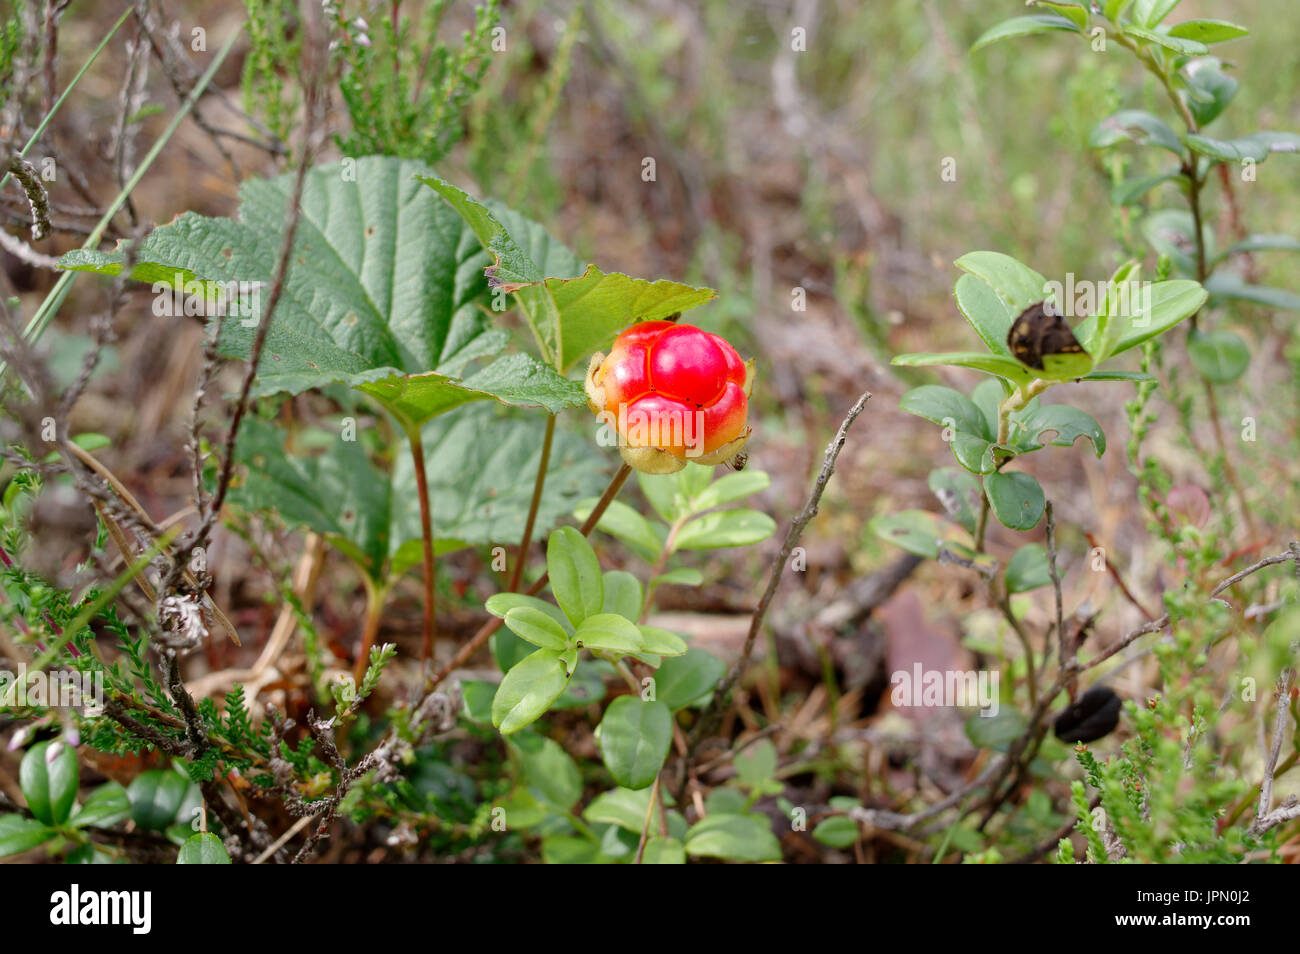 Ripe cloudberry (Rubus chamaemorus L) in Kuresoo, Soomaa, Estonia 29th July 2017 - Stock Image